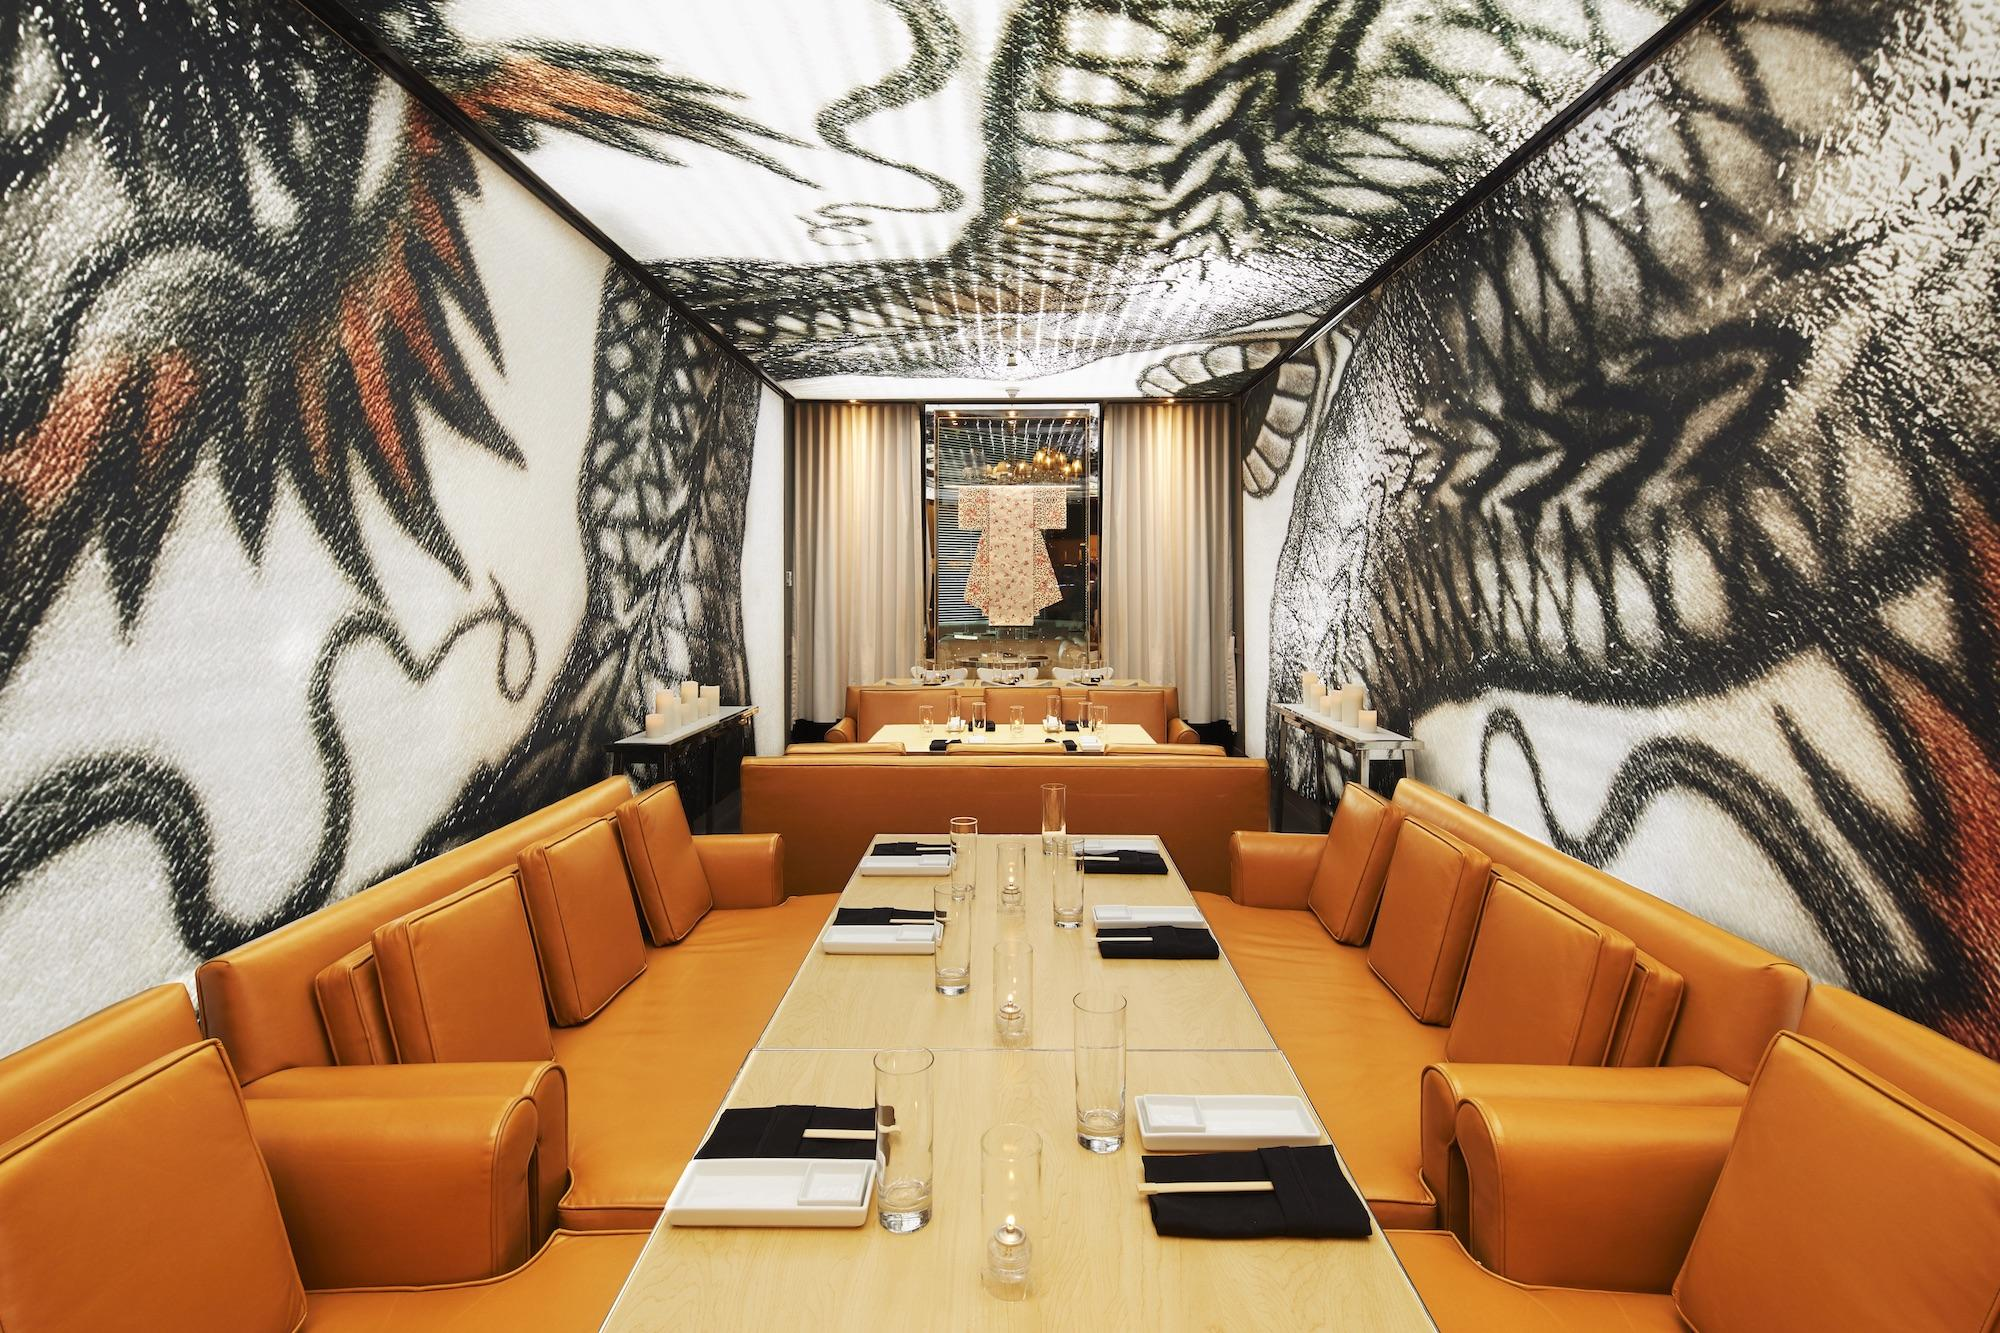 private dining room with wall and ceiling murals of a dragon